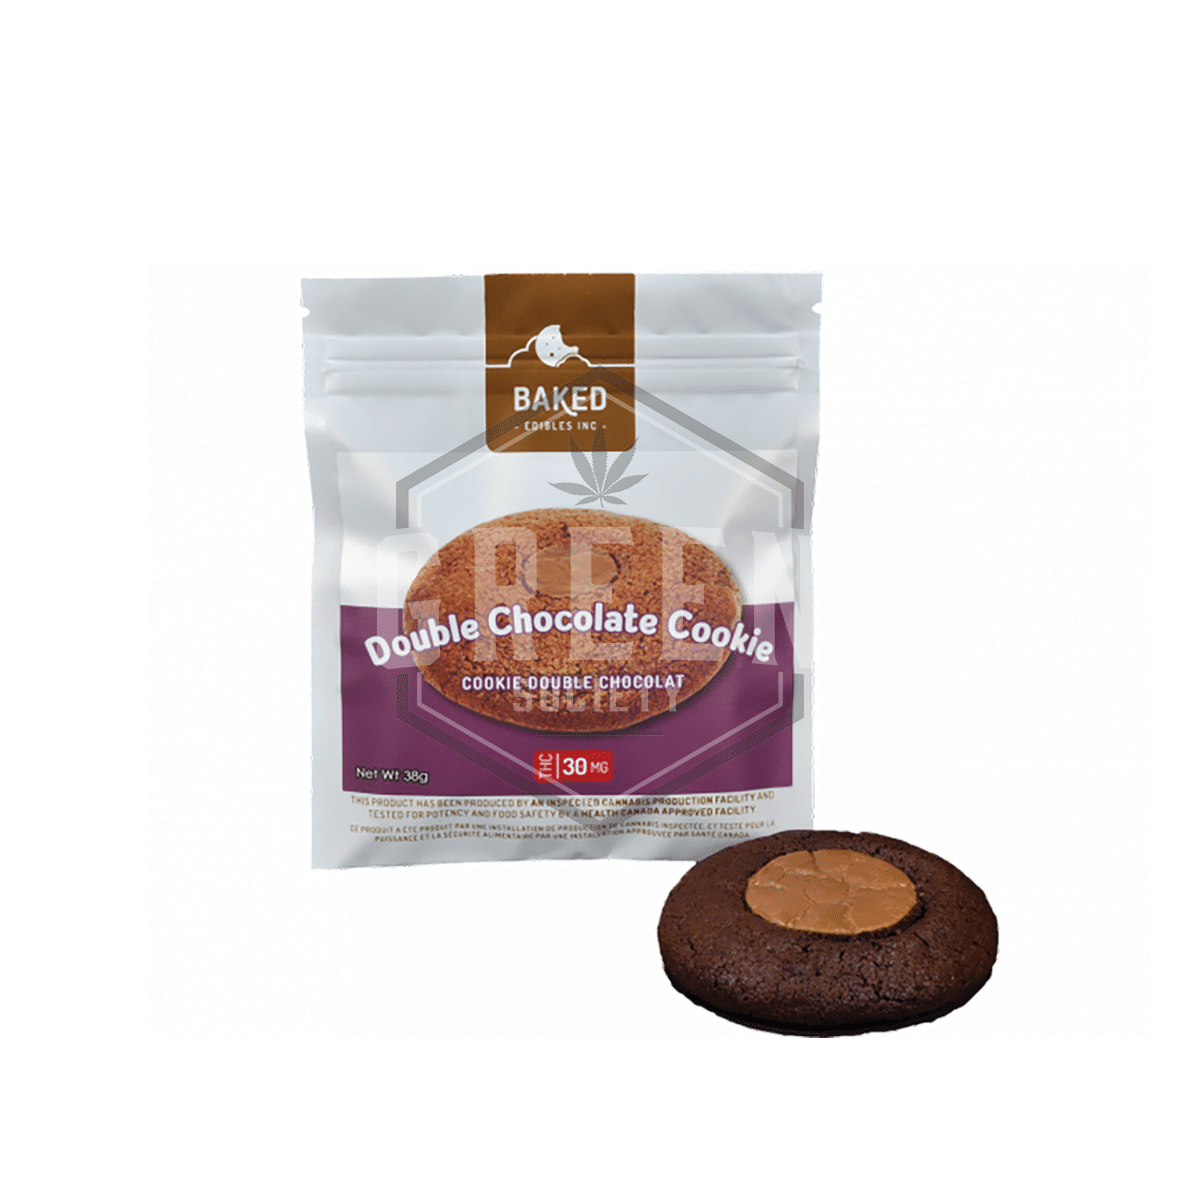 Double Chocolate Cookie (30mg) by Baked Edibles by Green Society - Image © 2018 Green Society. All Rights Reserved.